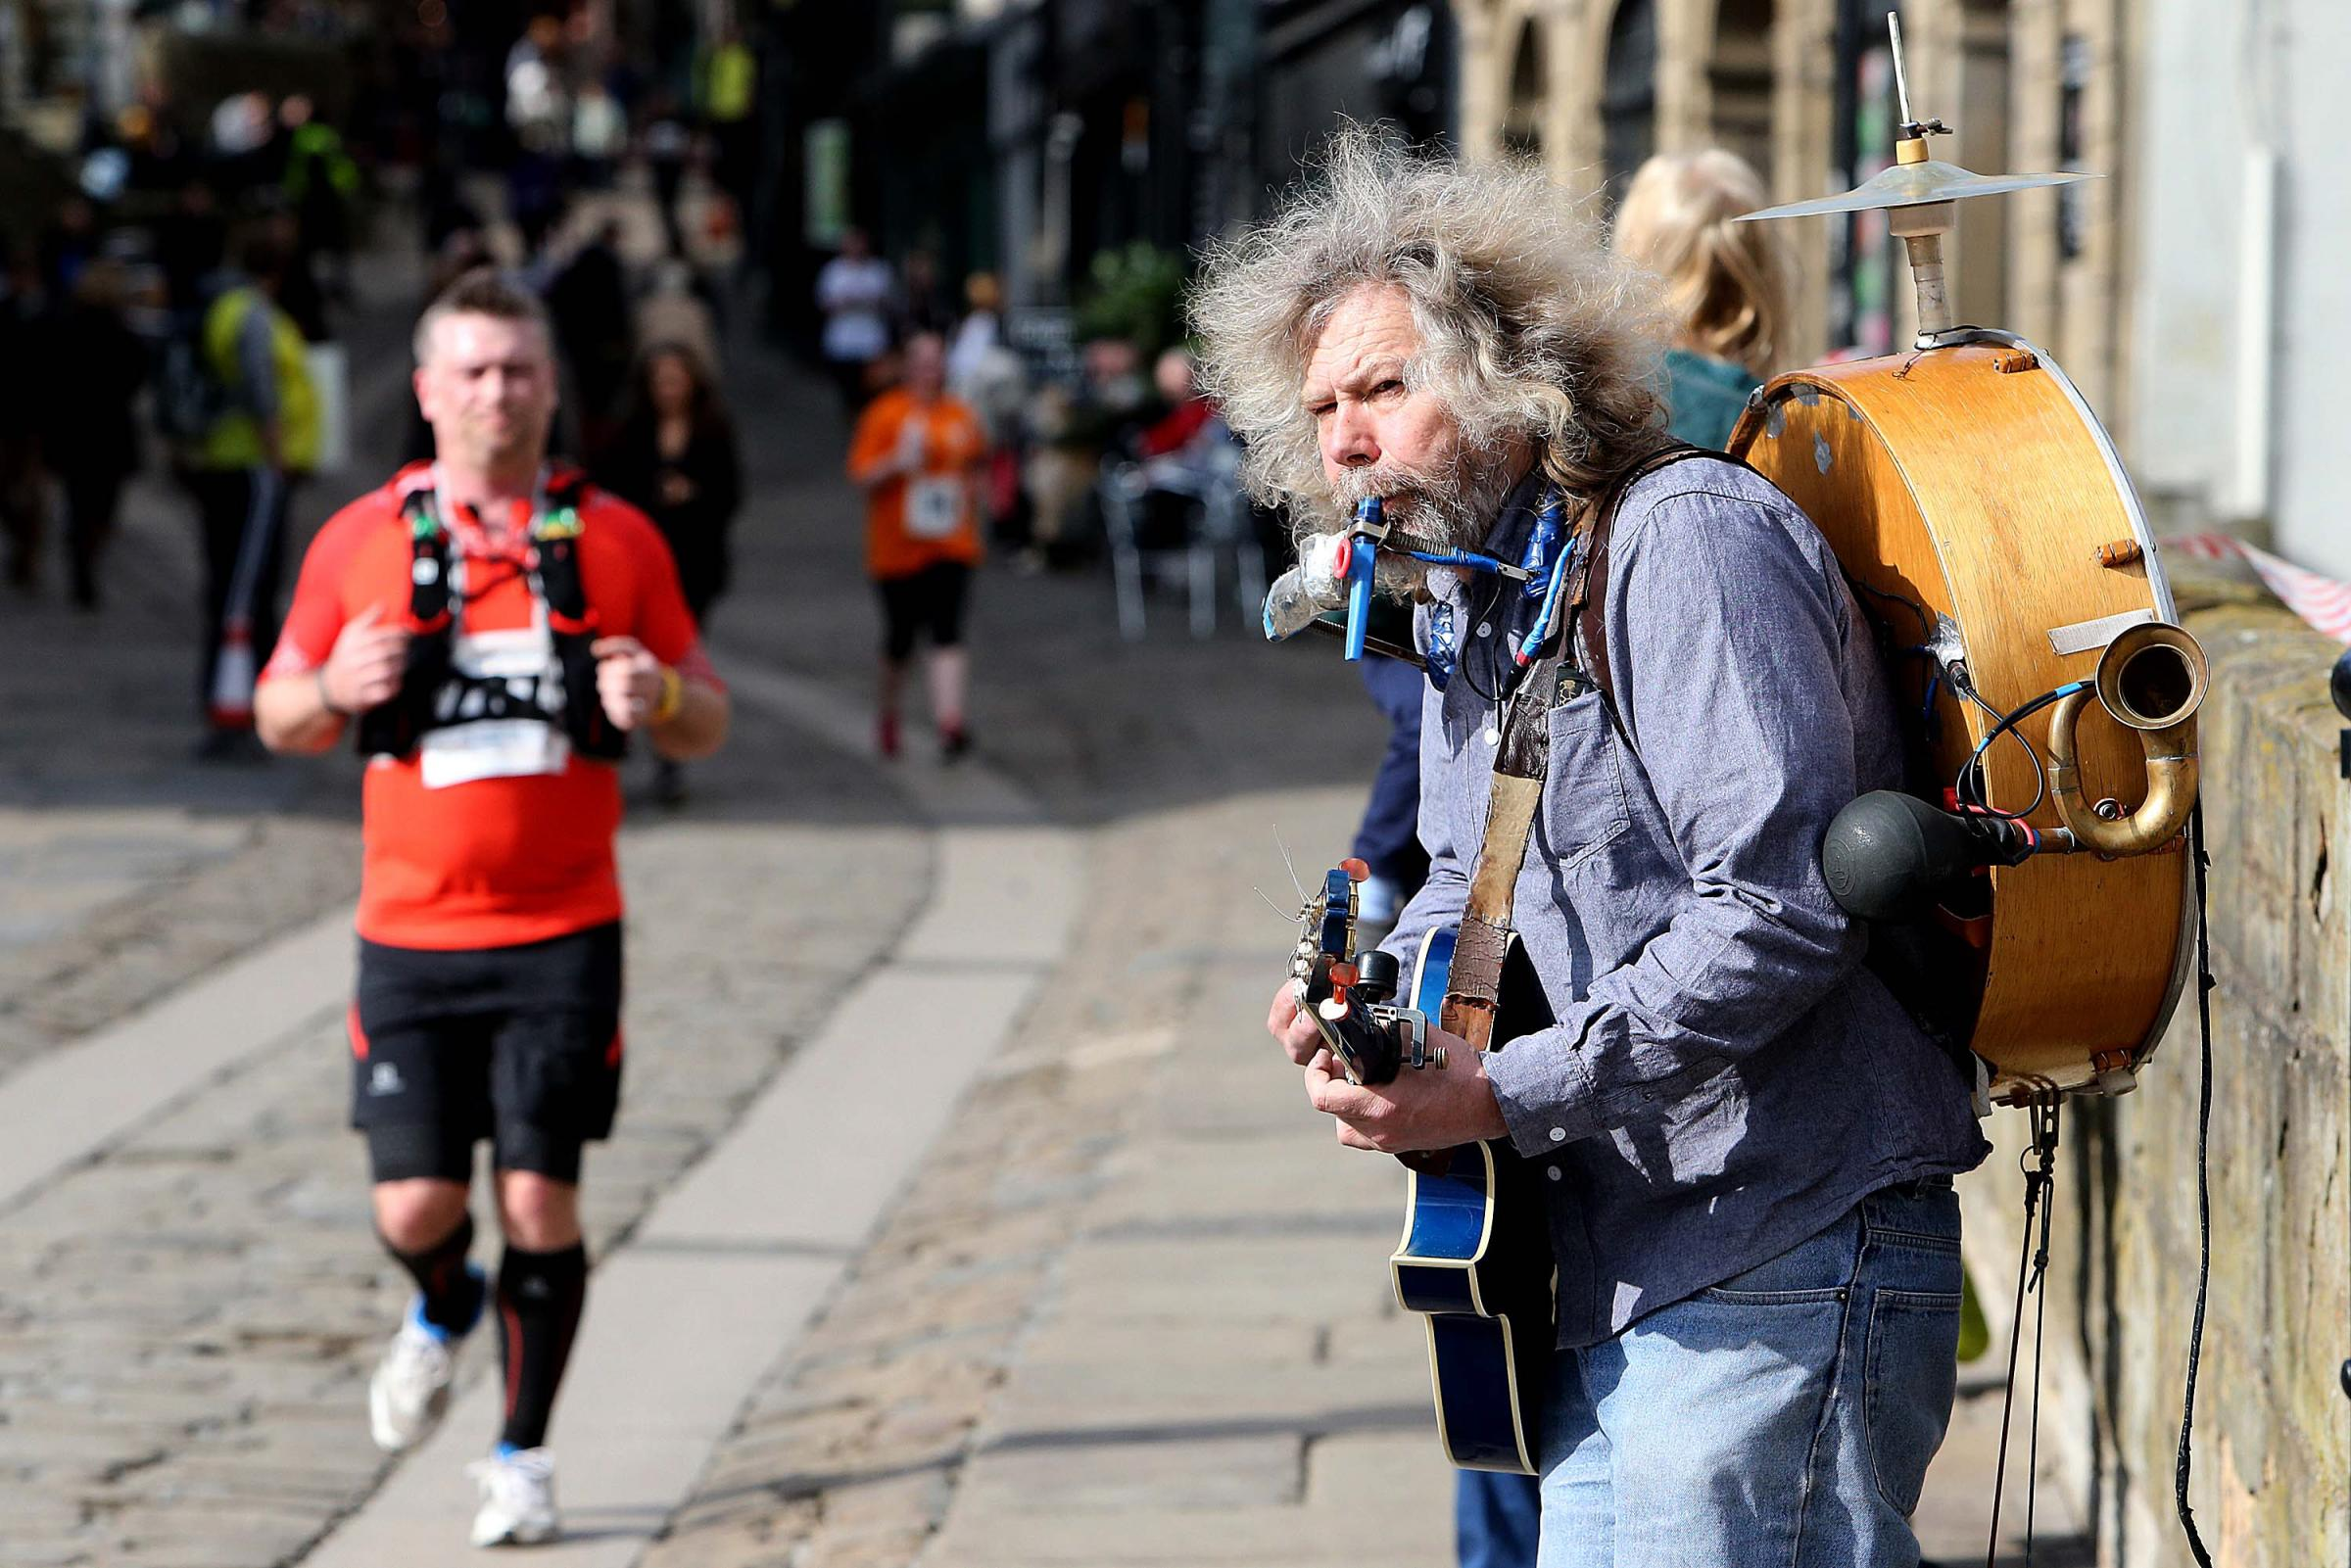 Busker turf wars ruining Durham say critics as rival musicians turn up volume to drown out o